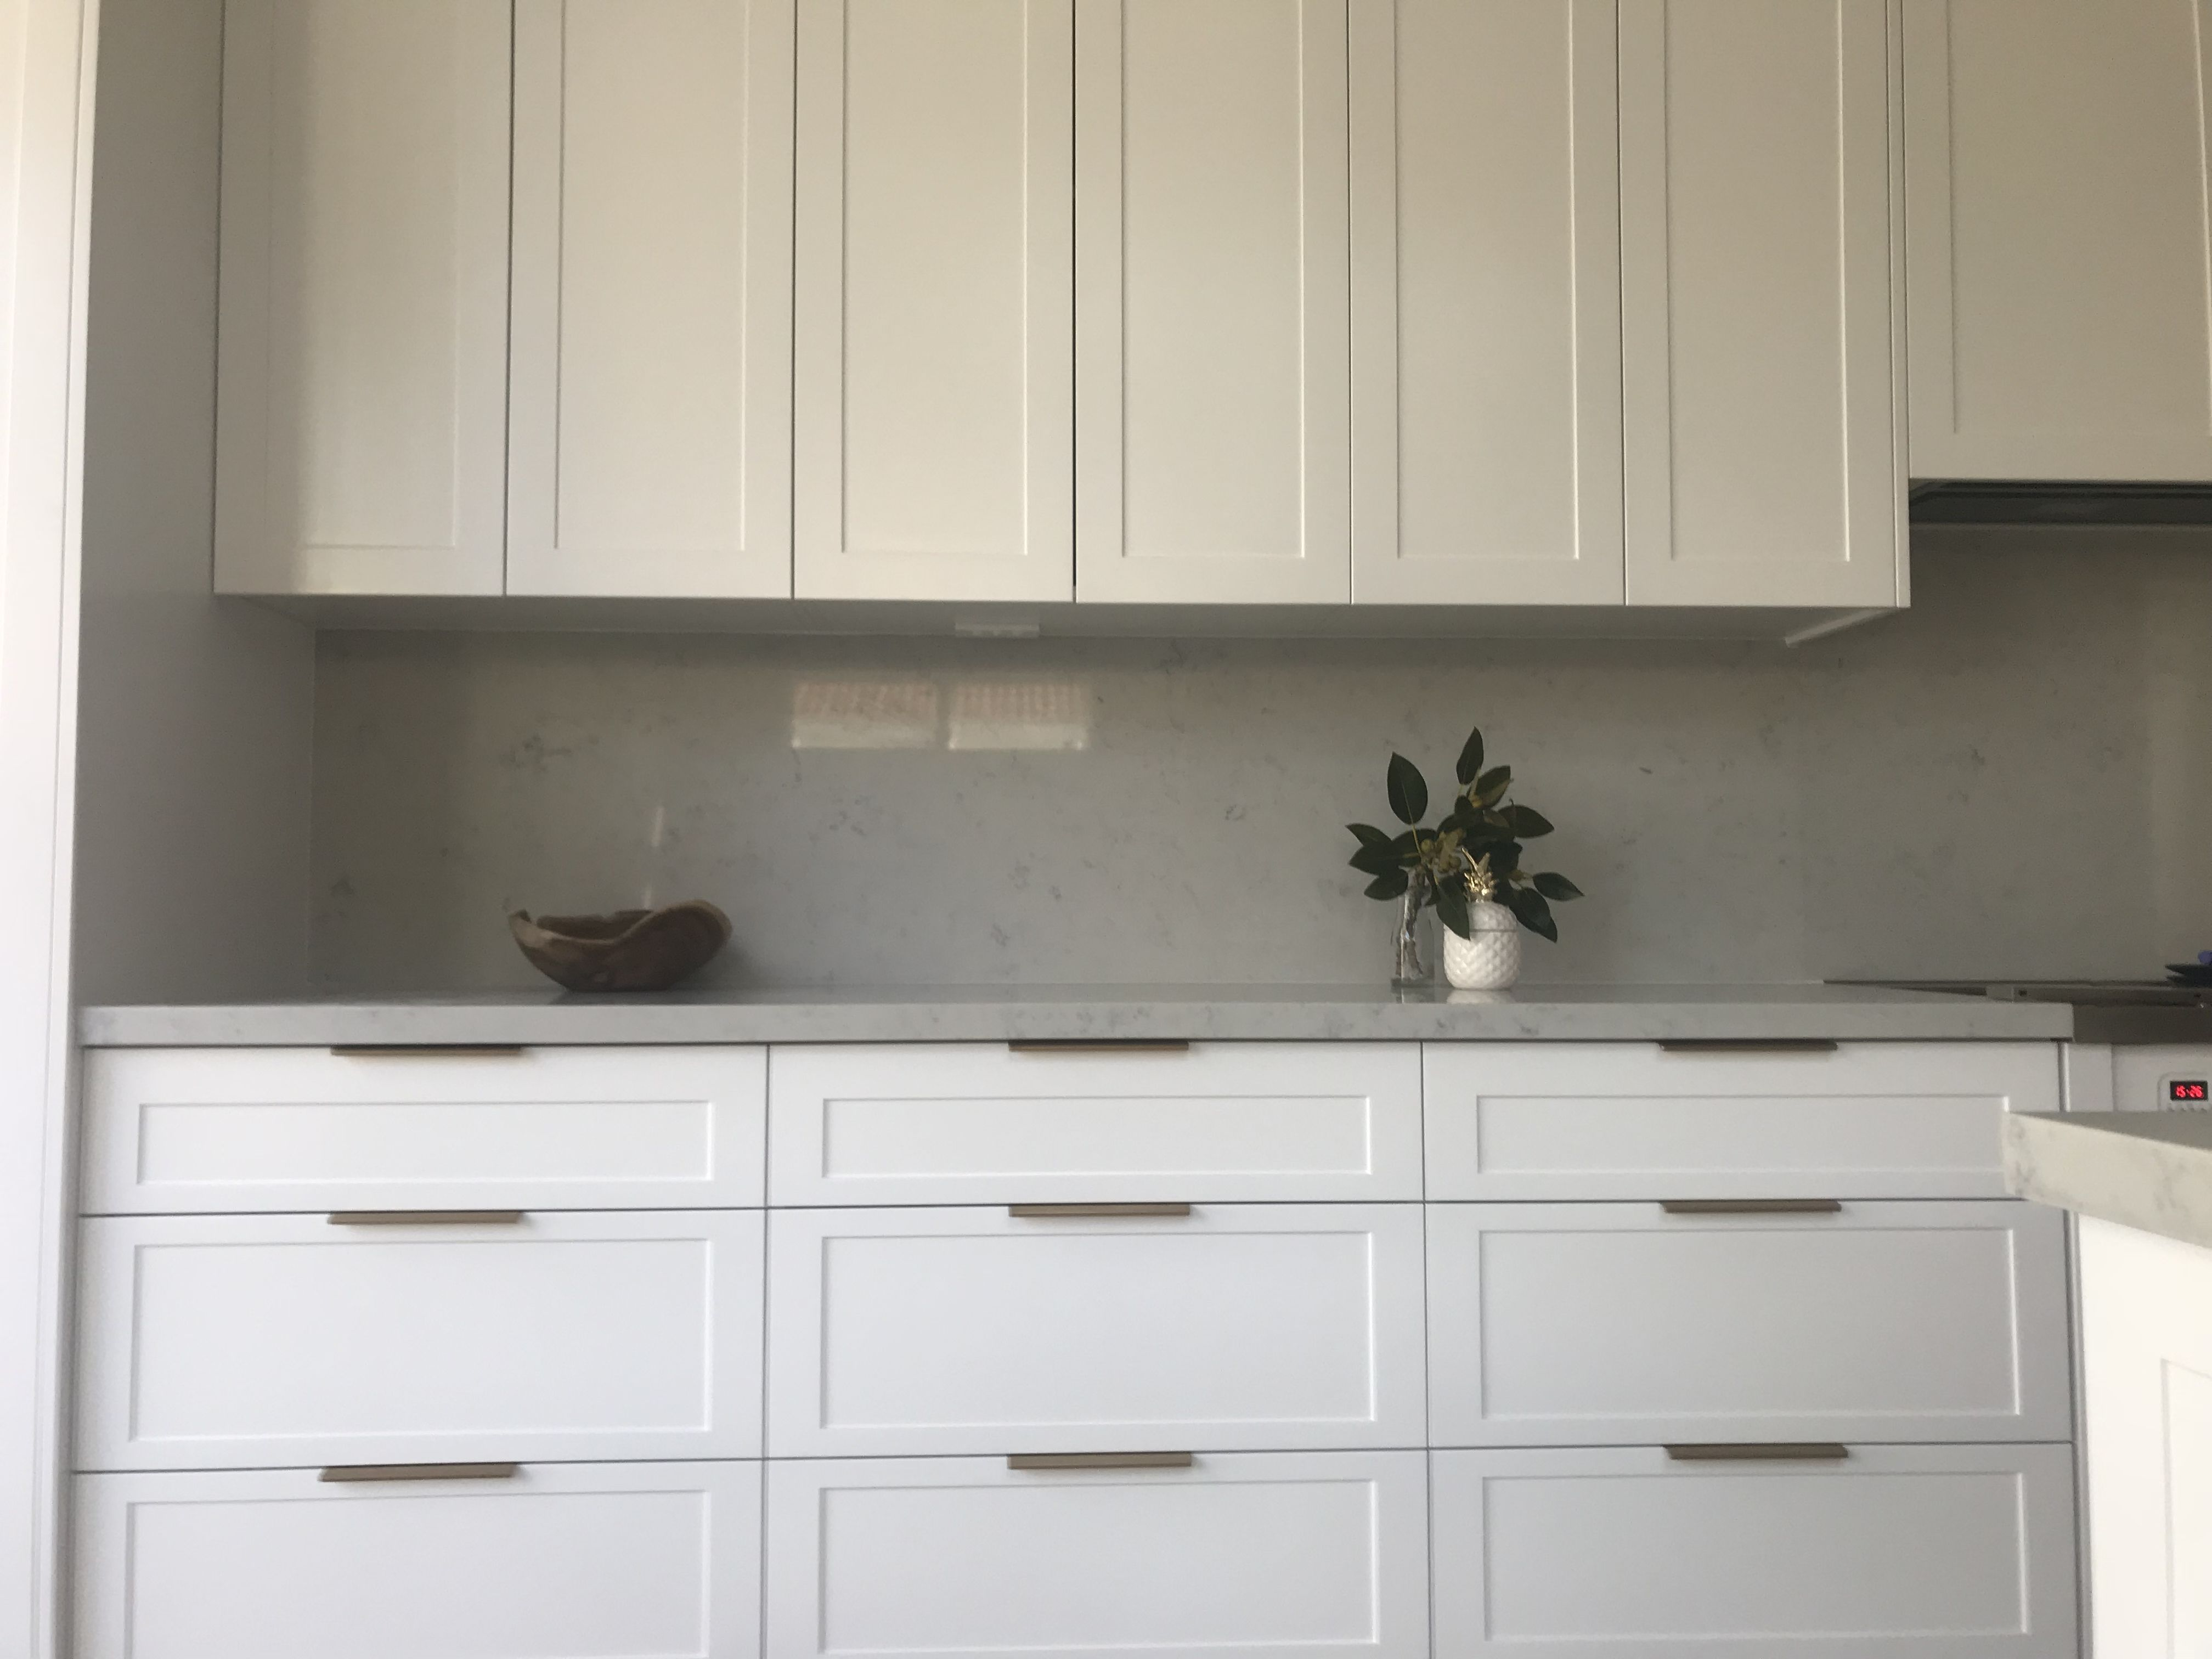 White Shaker Style Cabinets With Brushed Brass Lip Pull Handles